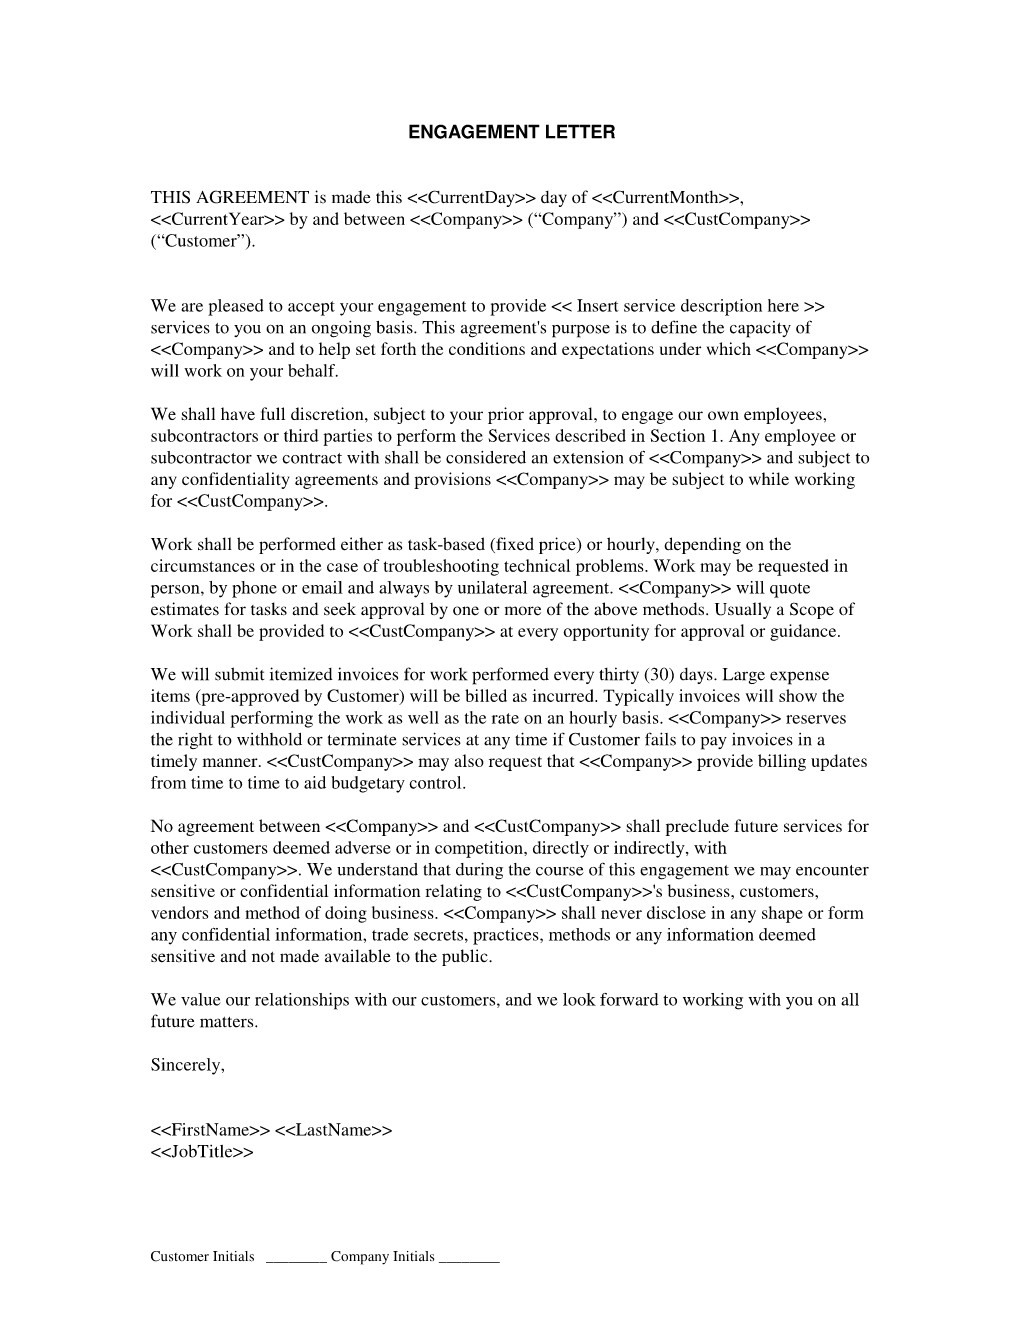 consulting engagement letter